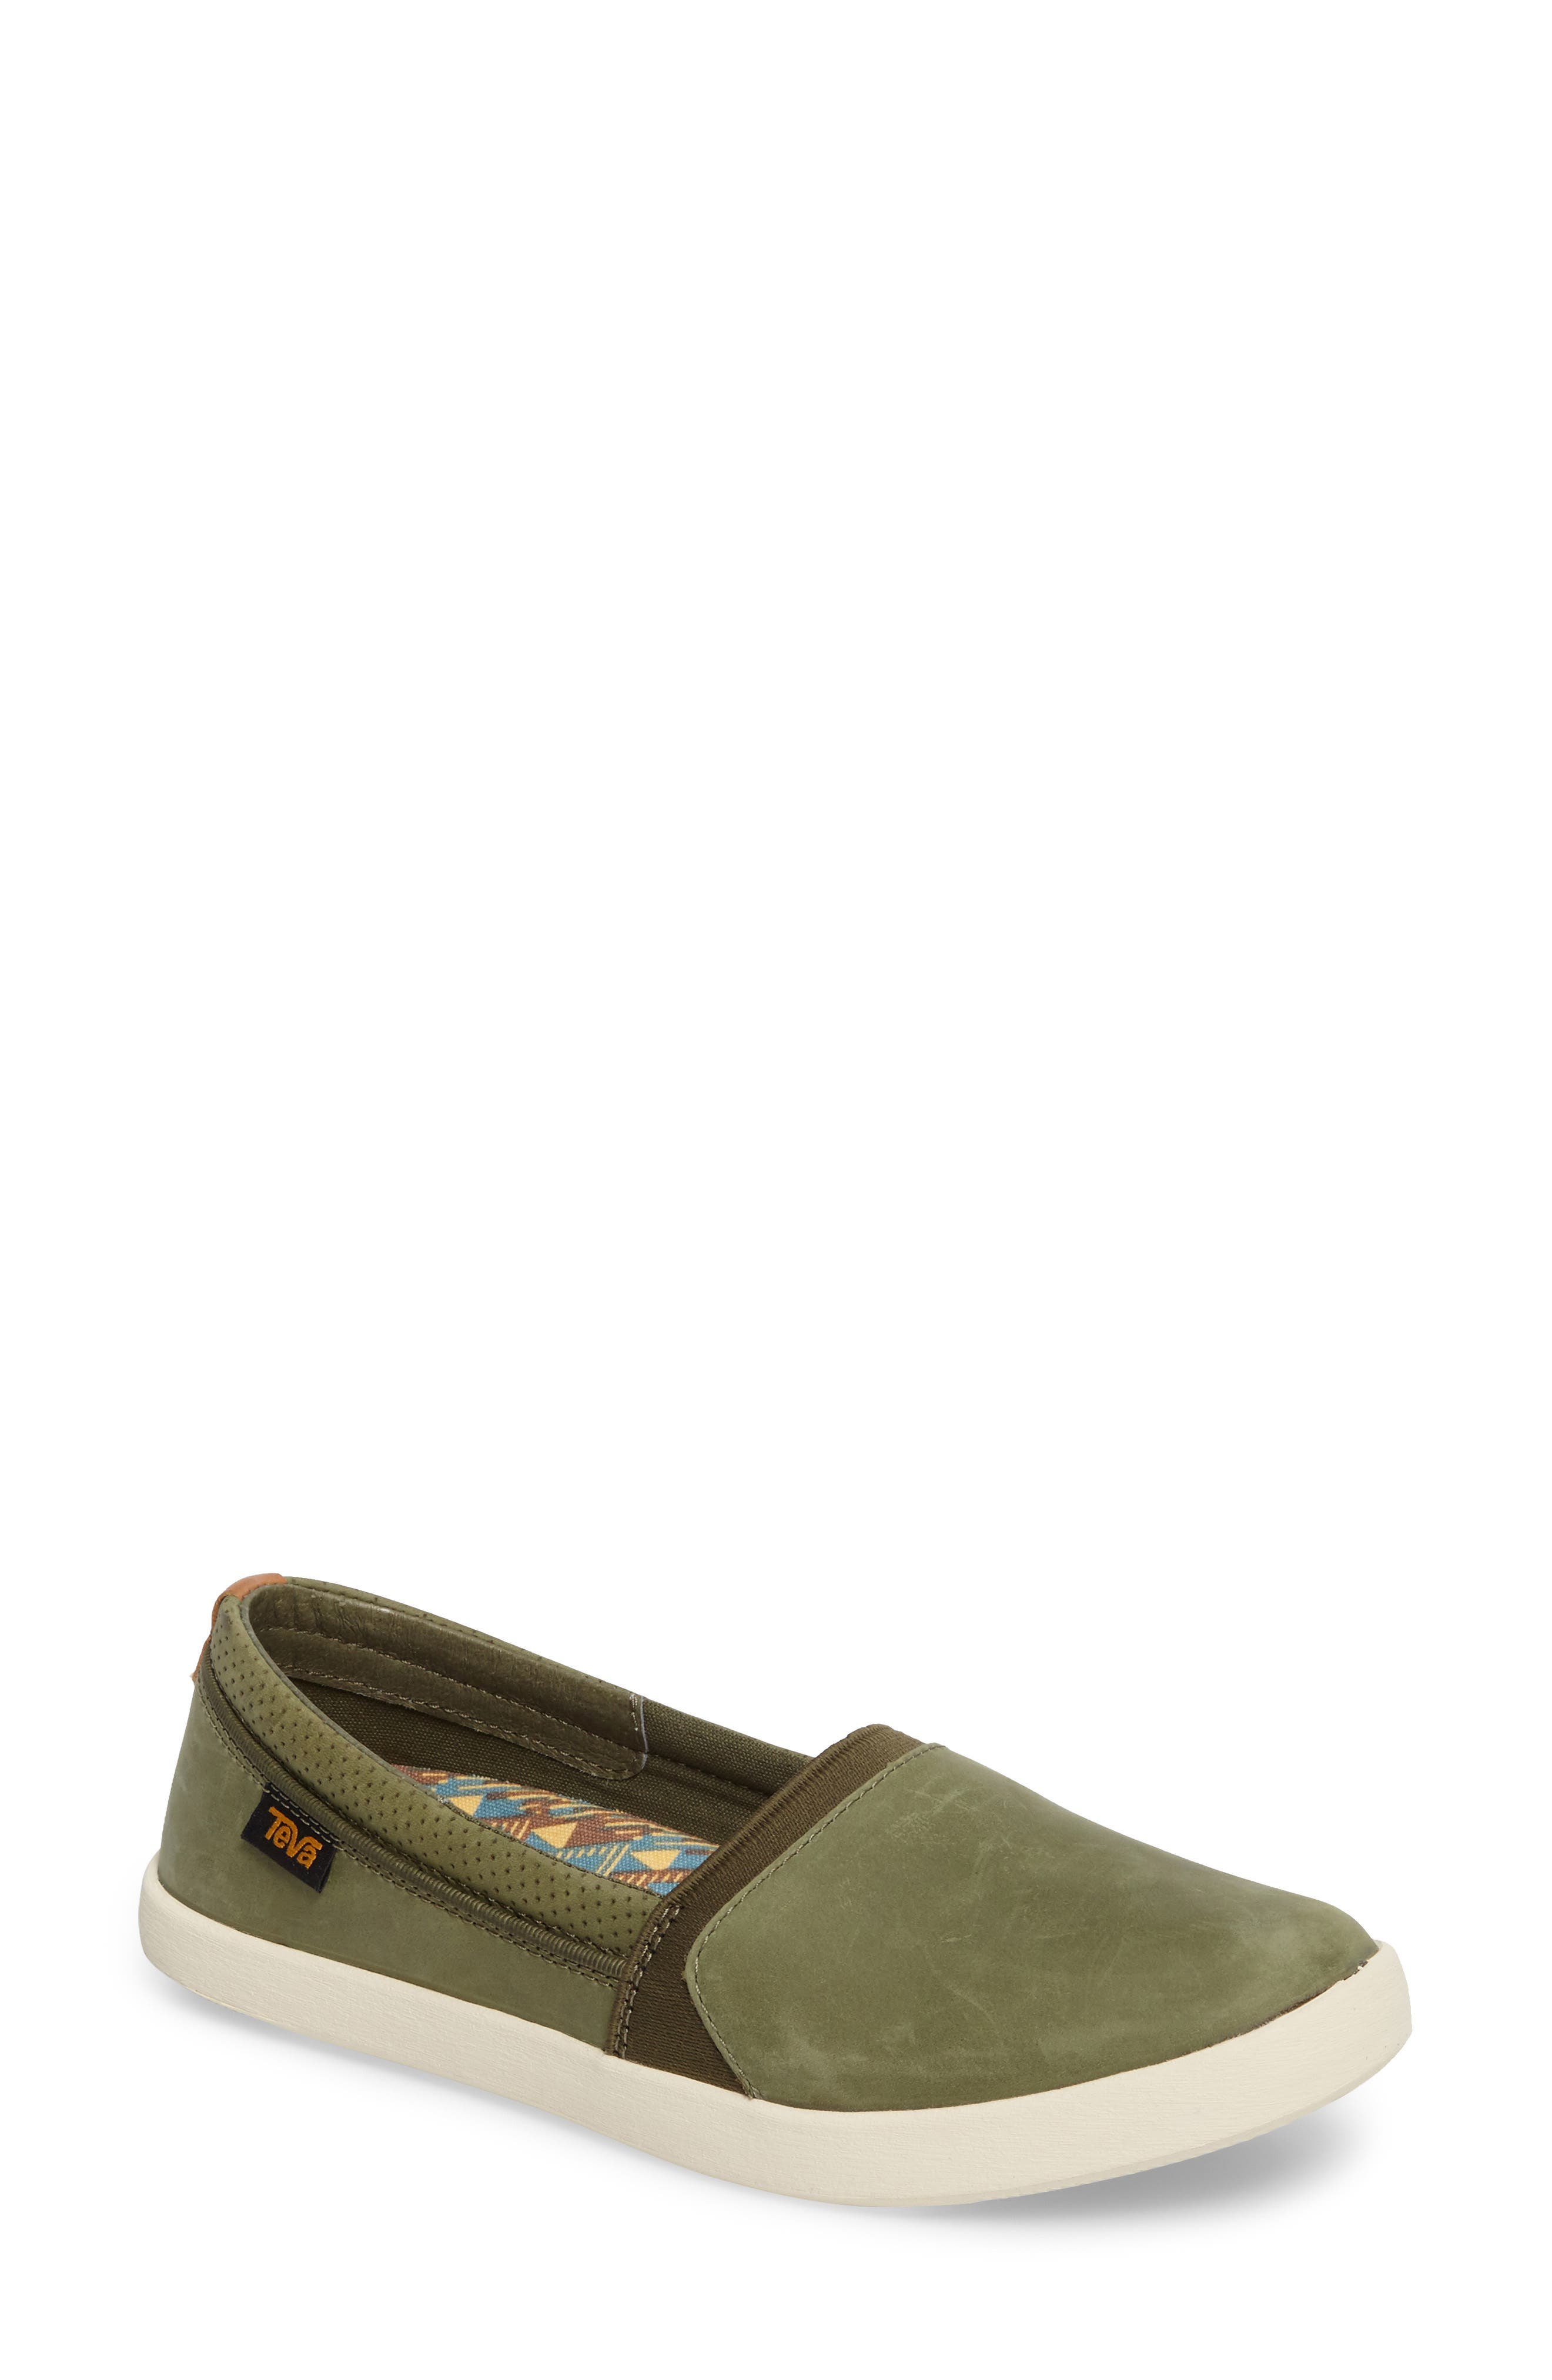 Willow Slip-On Sneaker,                             Main thumbnail 1, color,                             Olive Leather